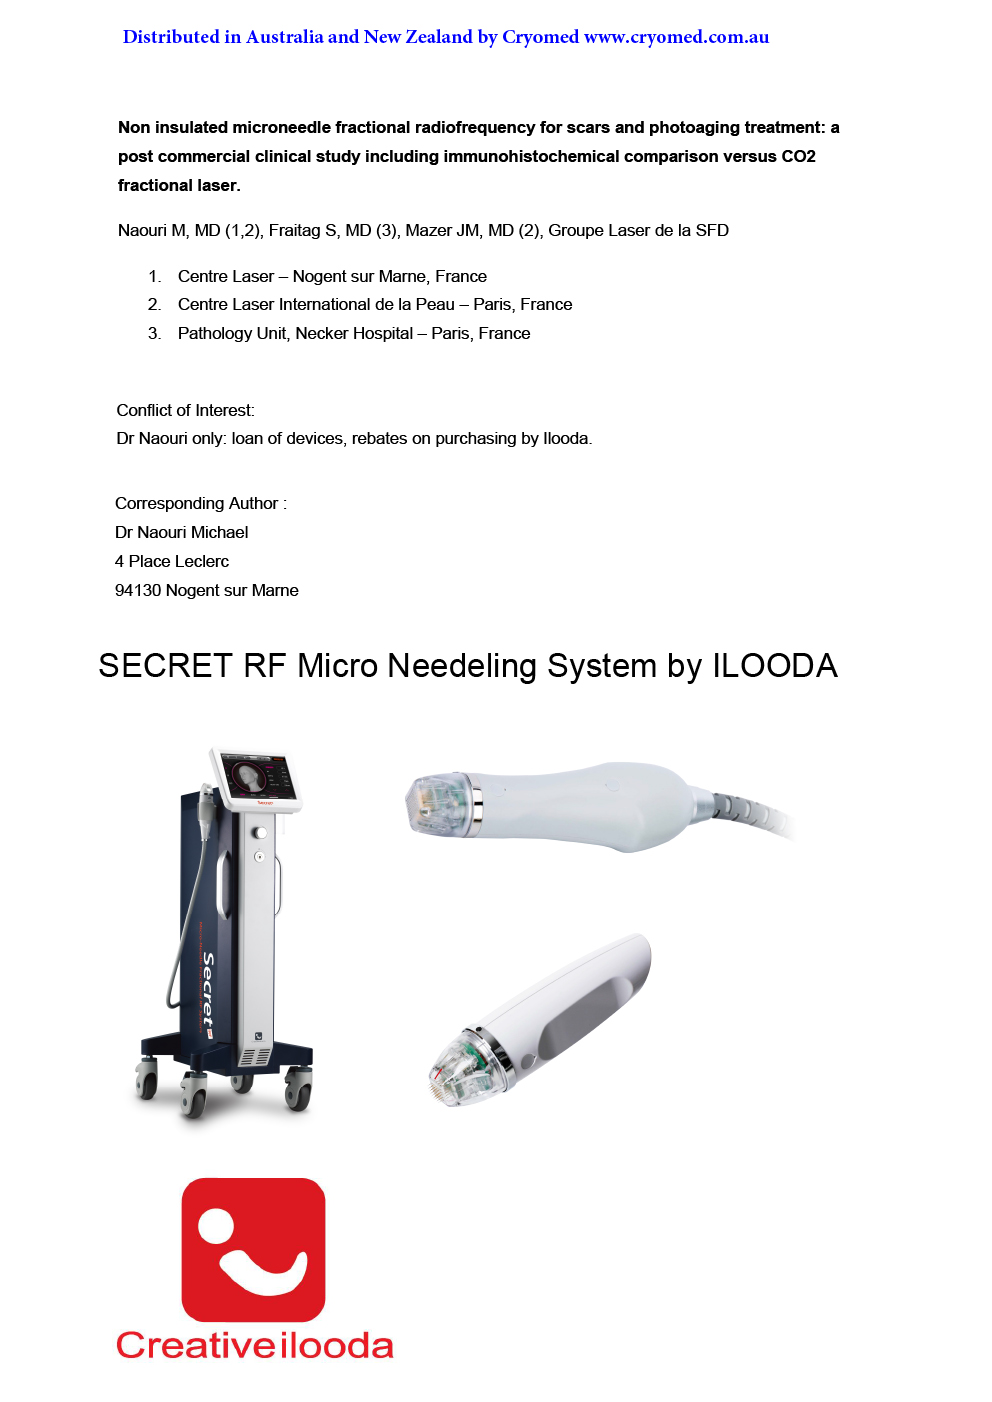 r2 Non insulated microneedle radiofrequency for the treatment of scars and photoageing by Dr. Naouri 1